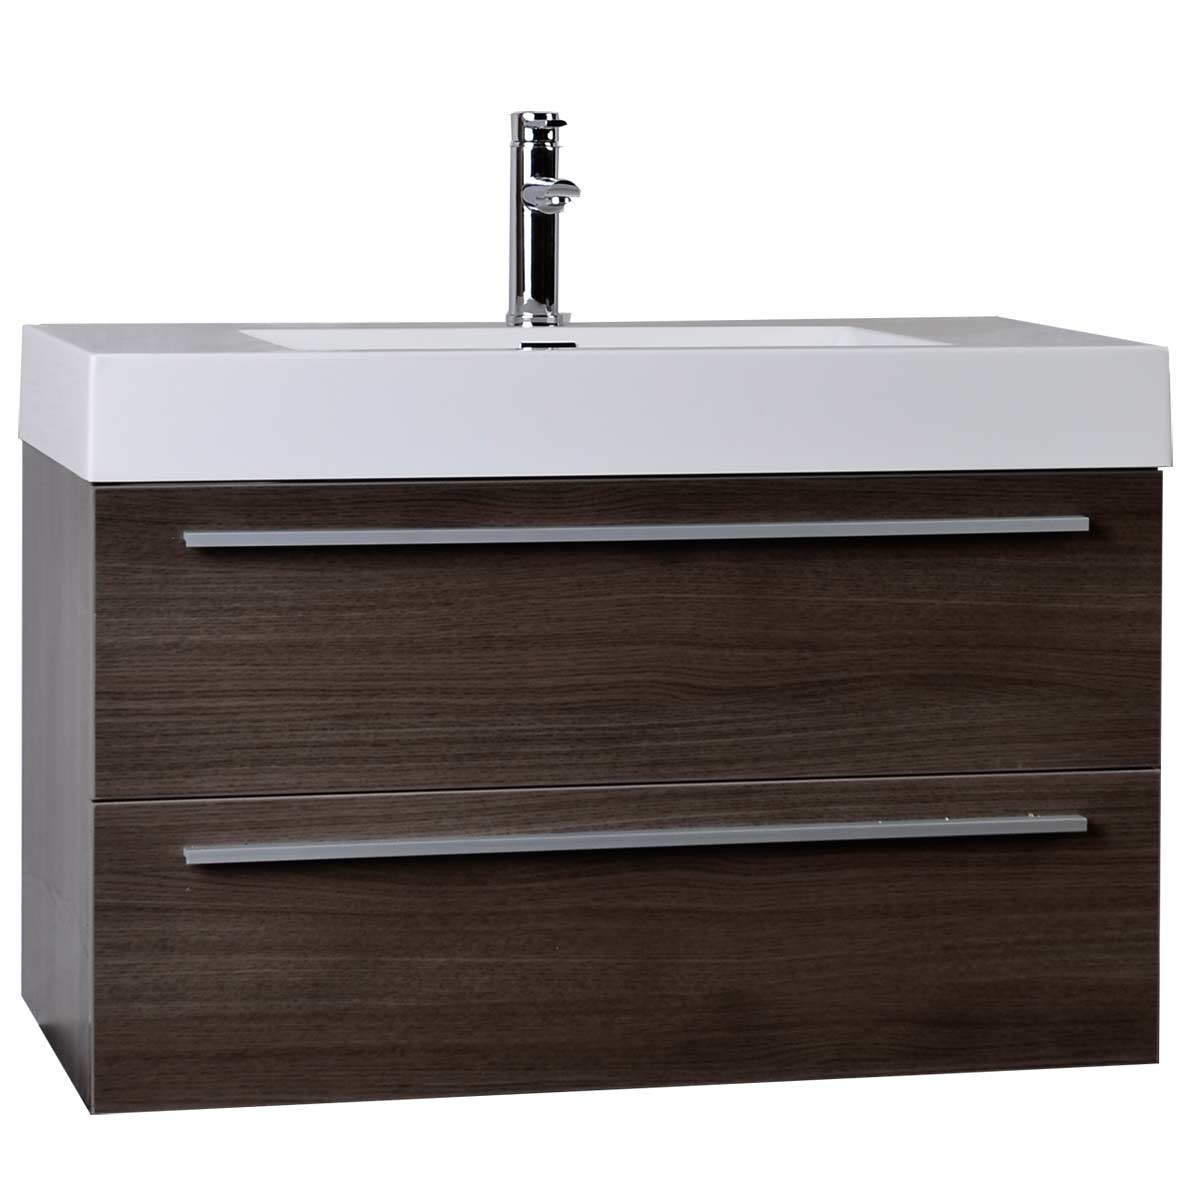 35 5 Modern Bathroom Vanity Grey Oak Wall Mount Free